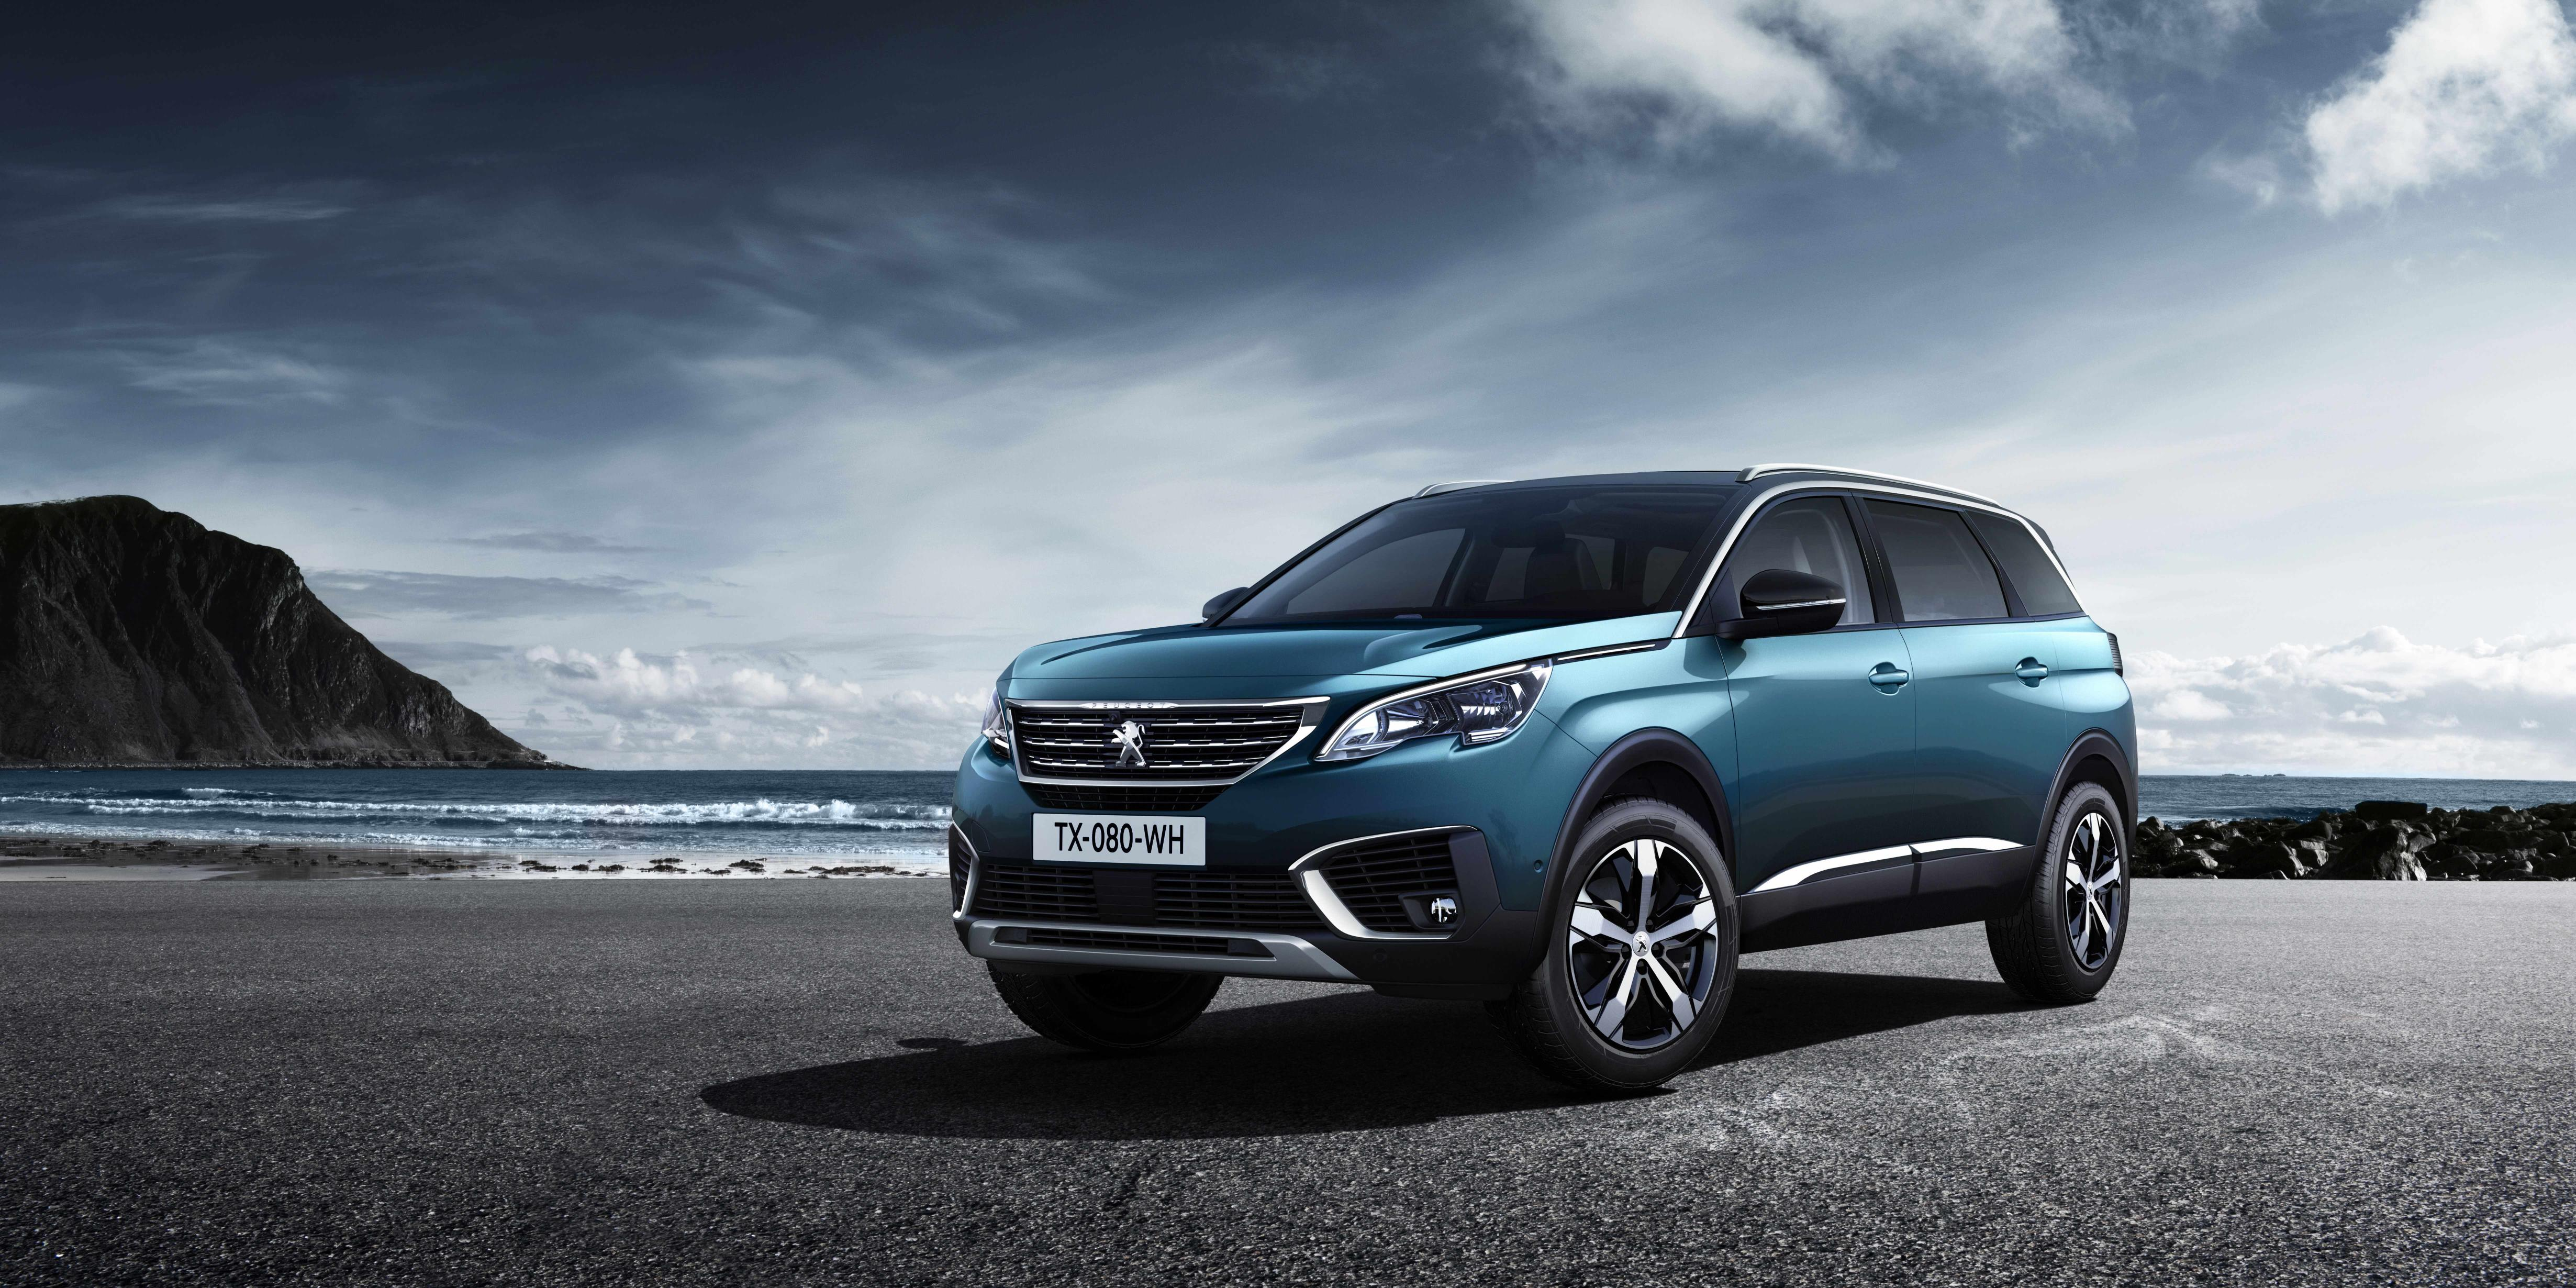 Peugeot 5008 SUV front view